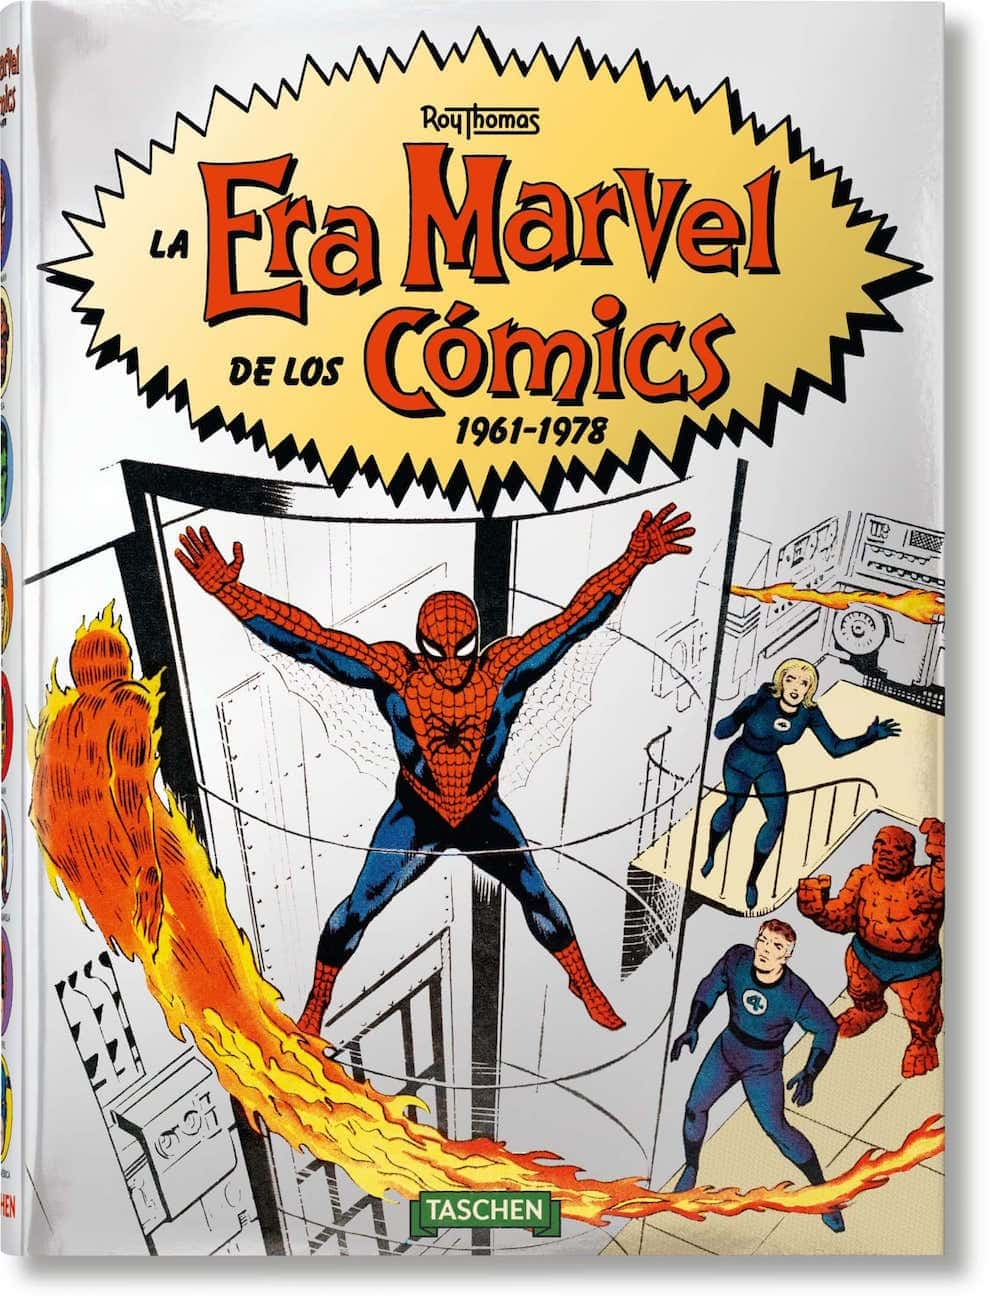 LA ERA MARVEL DE LOS COMICS. 1961-1978